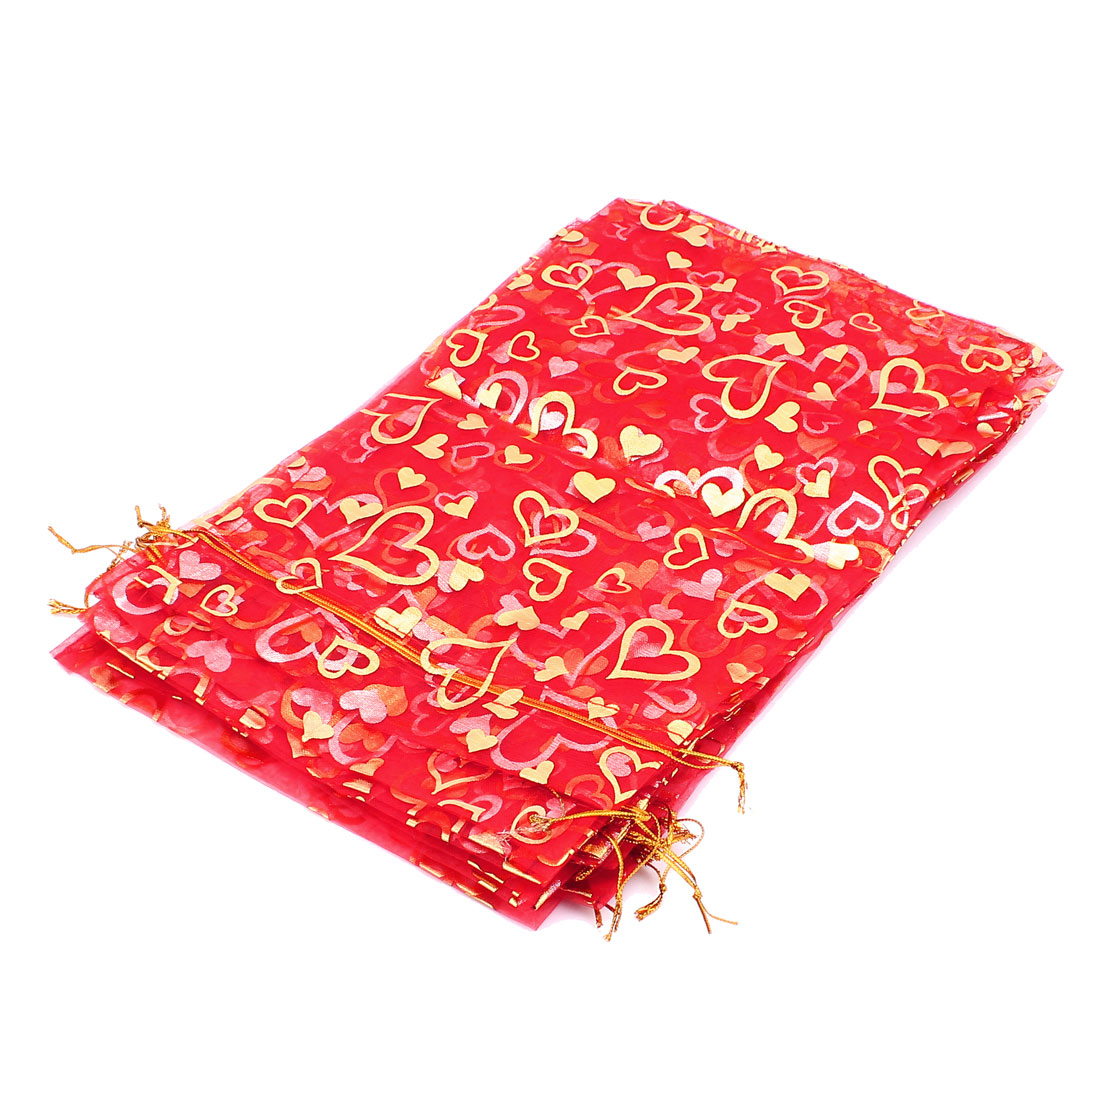 Organza Packing Pouch Jewelry Wedding Favor Gift Bags Red Gold Tone 10PCS